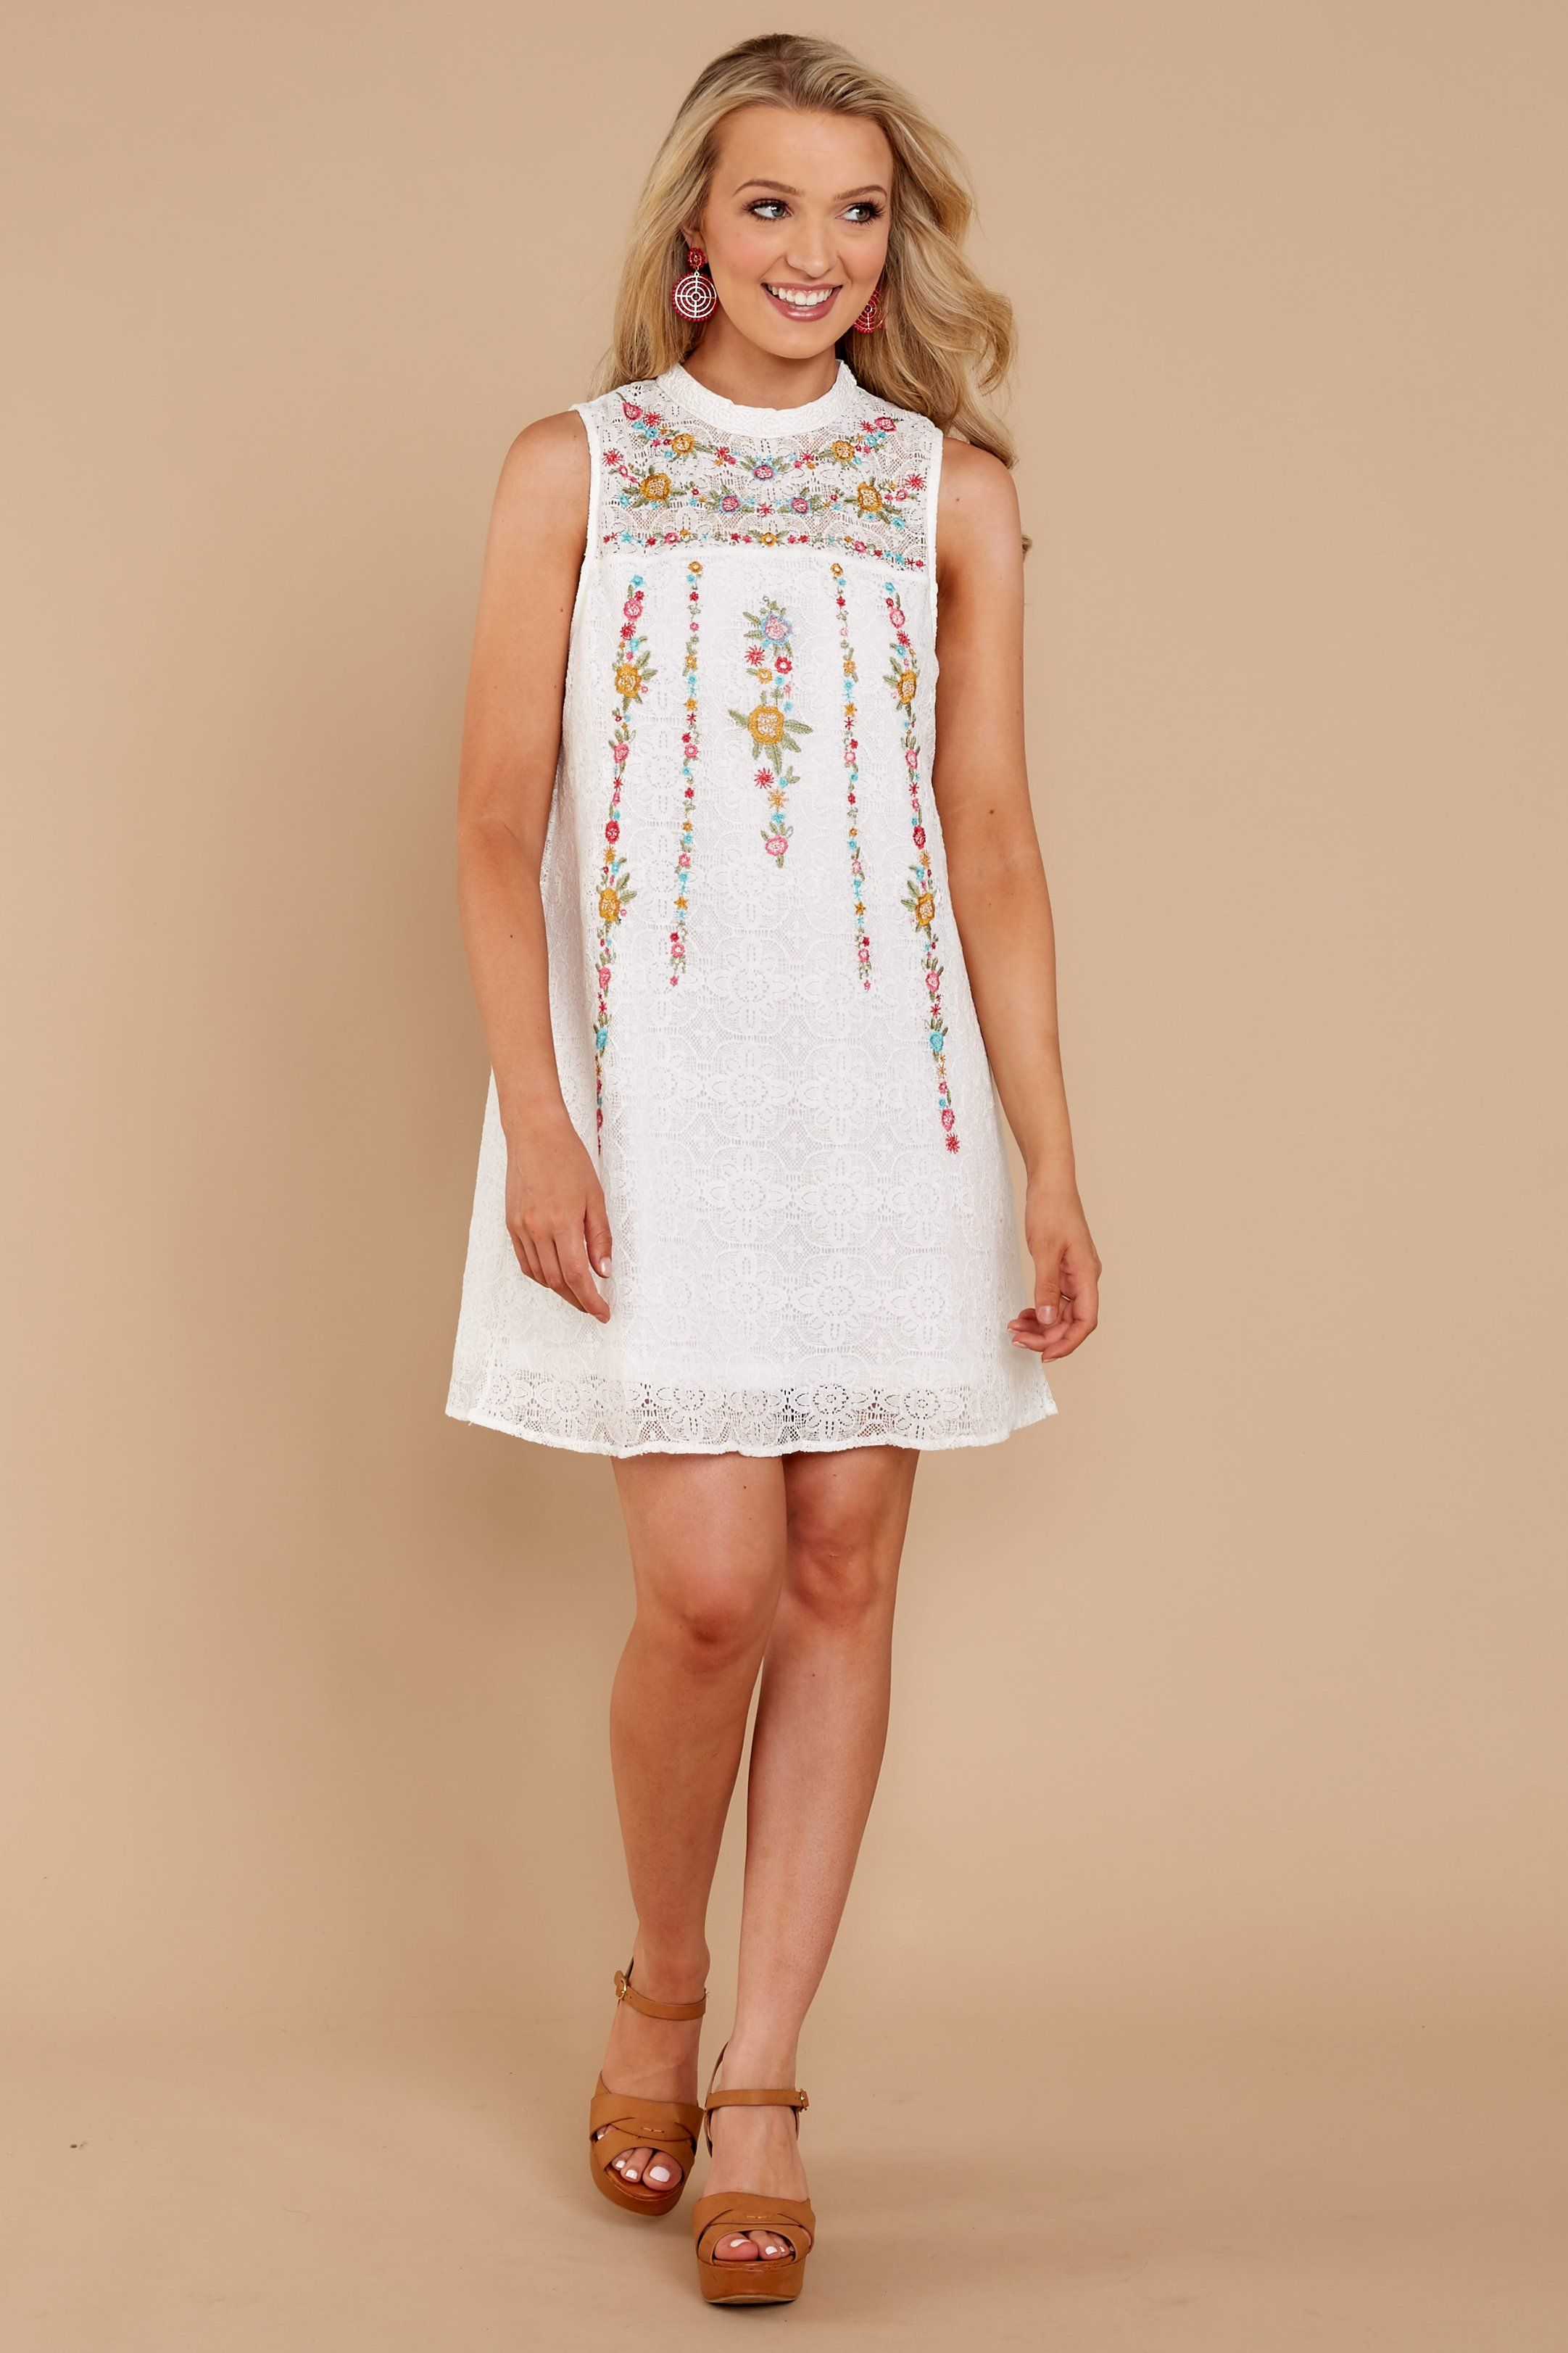 9f352d6acf Chic White Lace Embroidered Dress - Adorable White Lace Dress - Dress -   44.00 – Red Dress Boutique